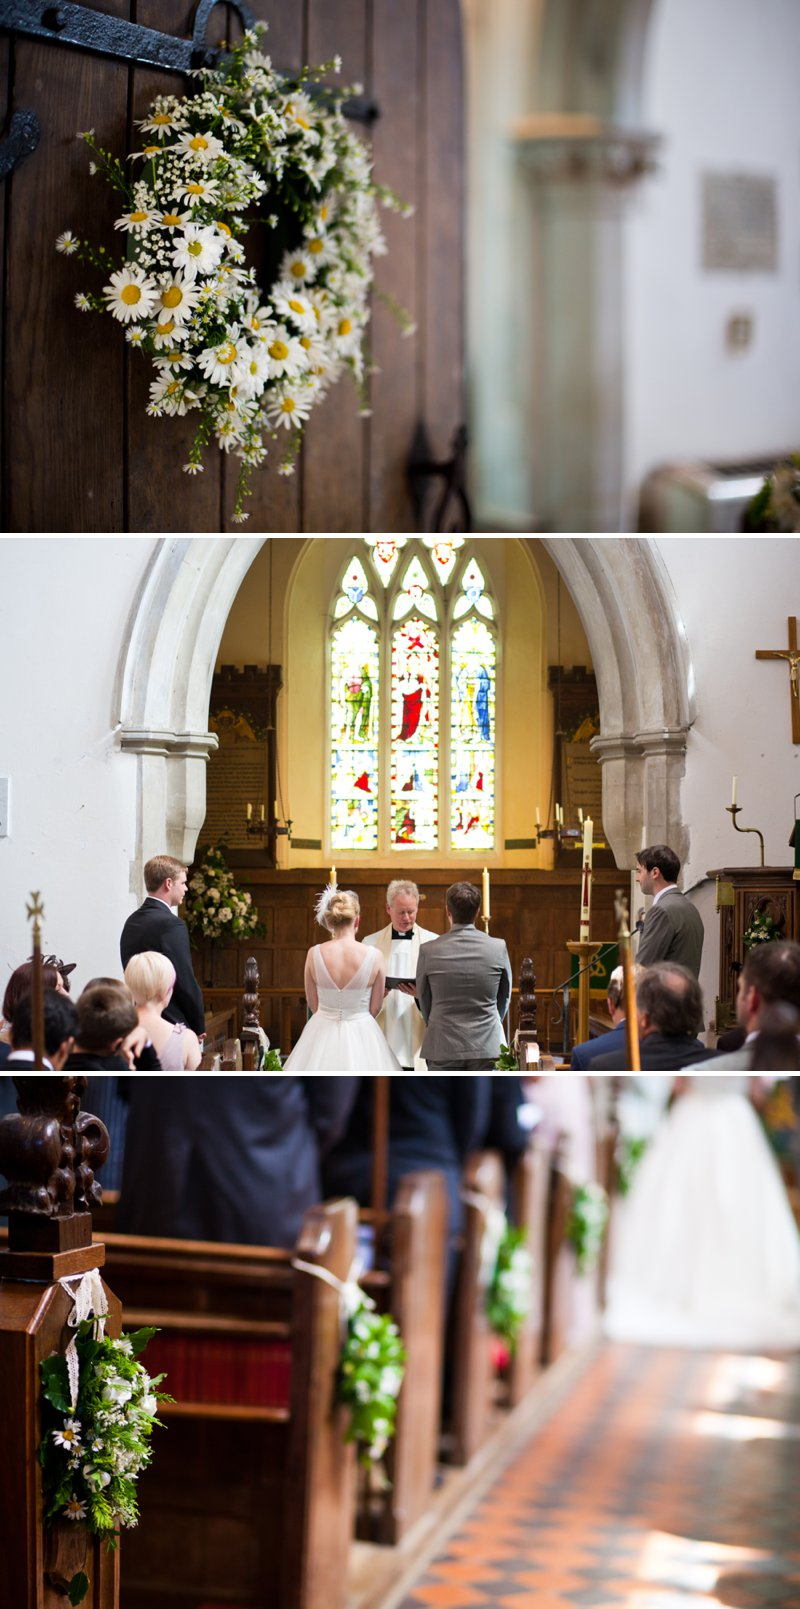 Traditional Church Wedding Of Rock My Wedding Real Bride Rebecca With Bird Cage Veil And Ellis Brides Gown Rolls Royce For Wedding Car And Fabric Flowers For Bouquets And Buttonholes 7